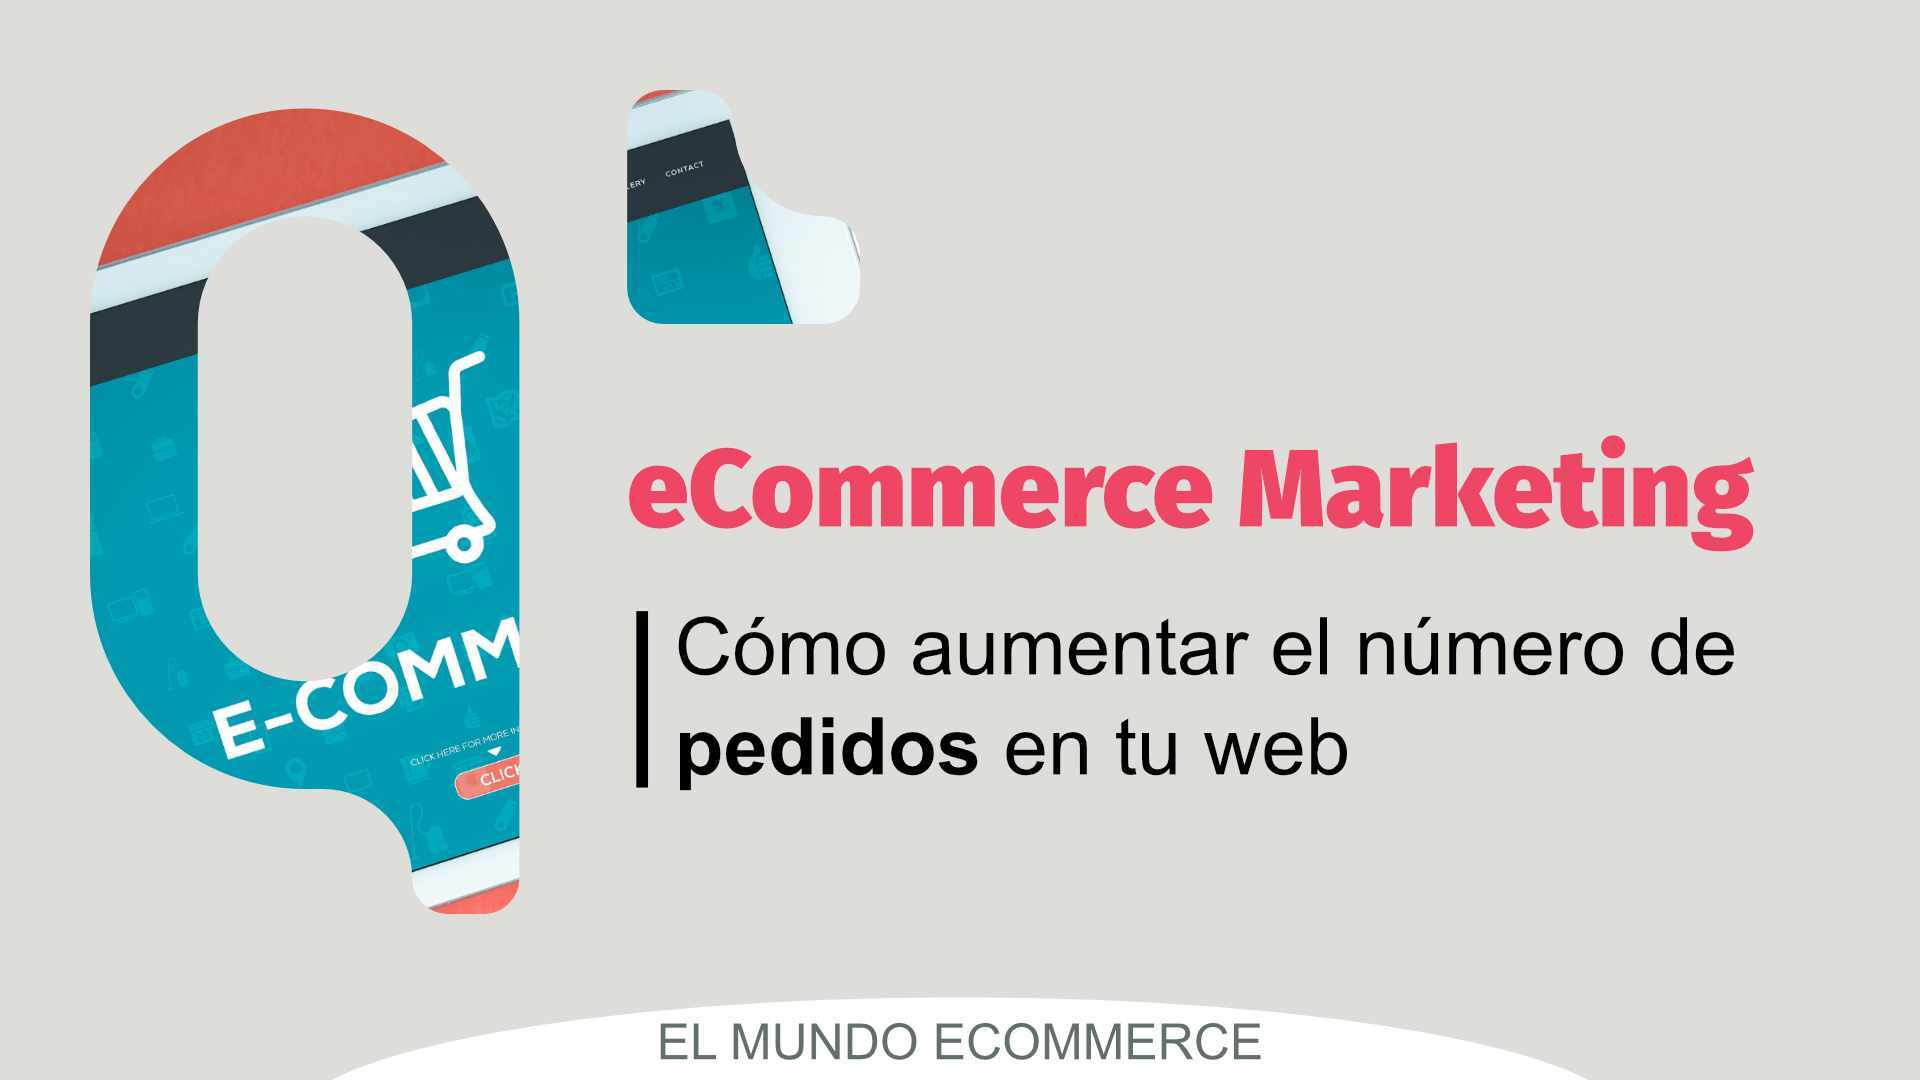 eCommerce marketing para aumentar los pedidos en tu web